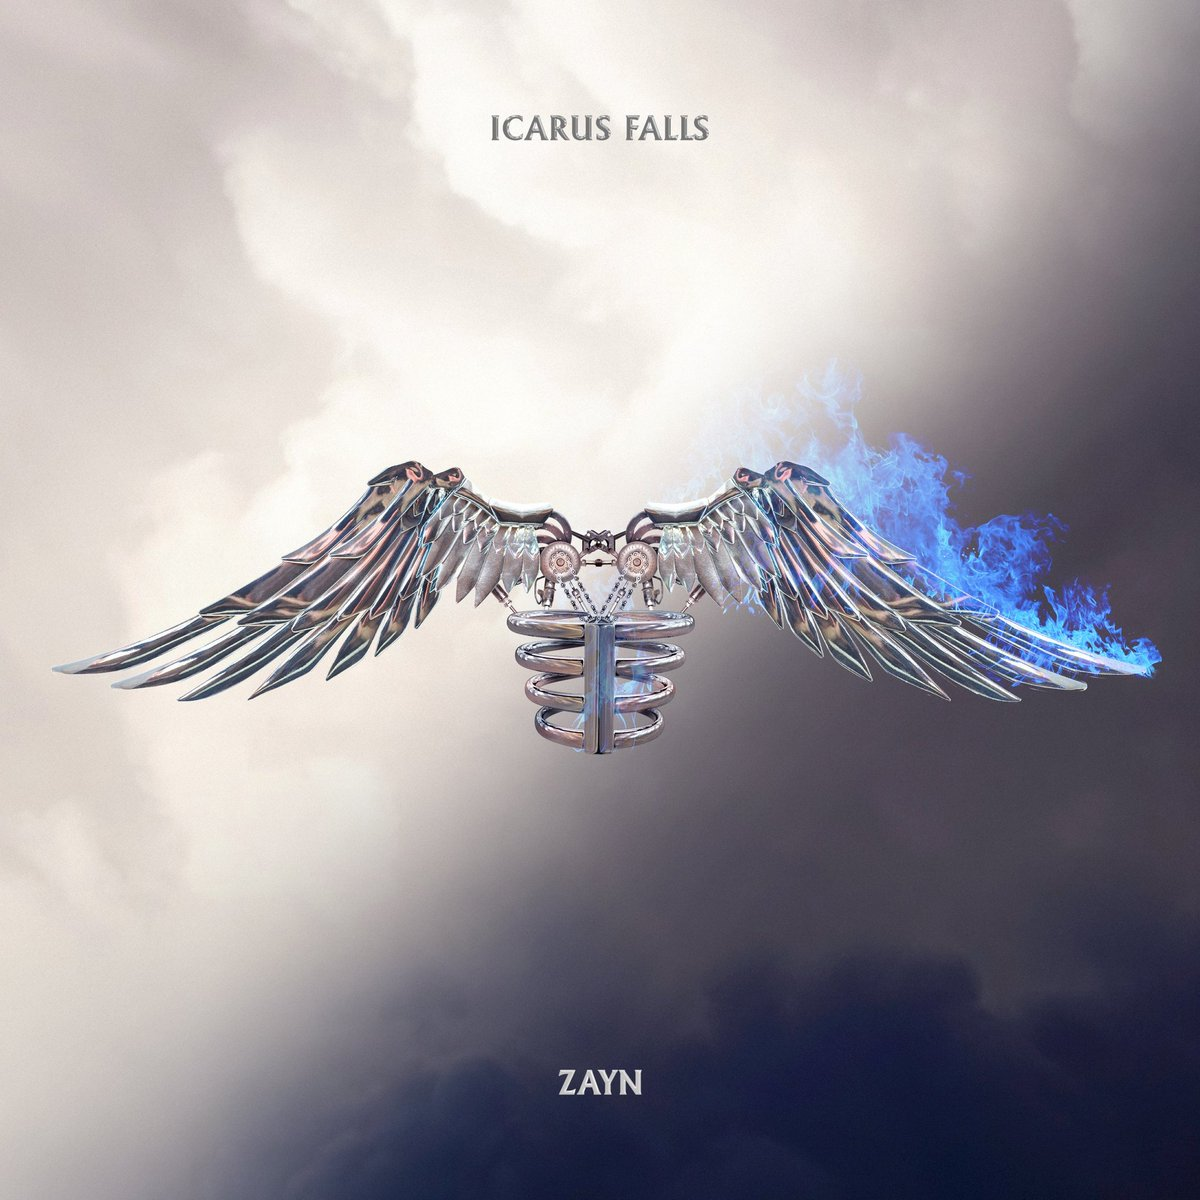 All songs are so good af. #letme #goodyears #Rainberry #icarusfalls #zayn